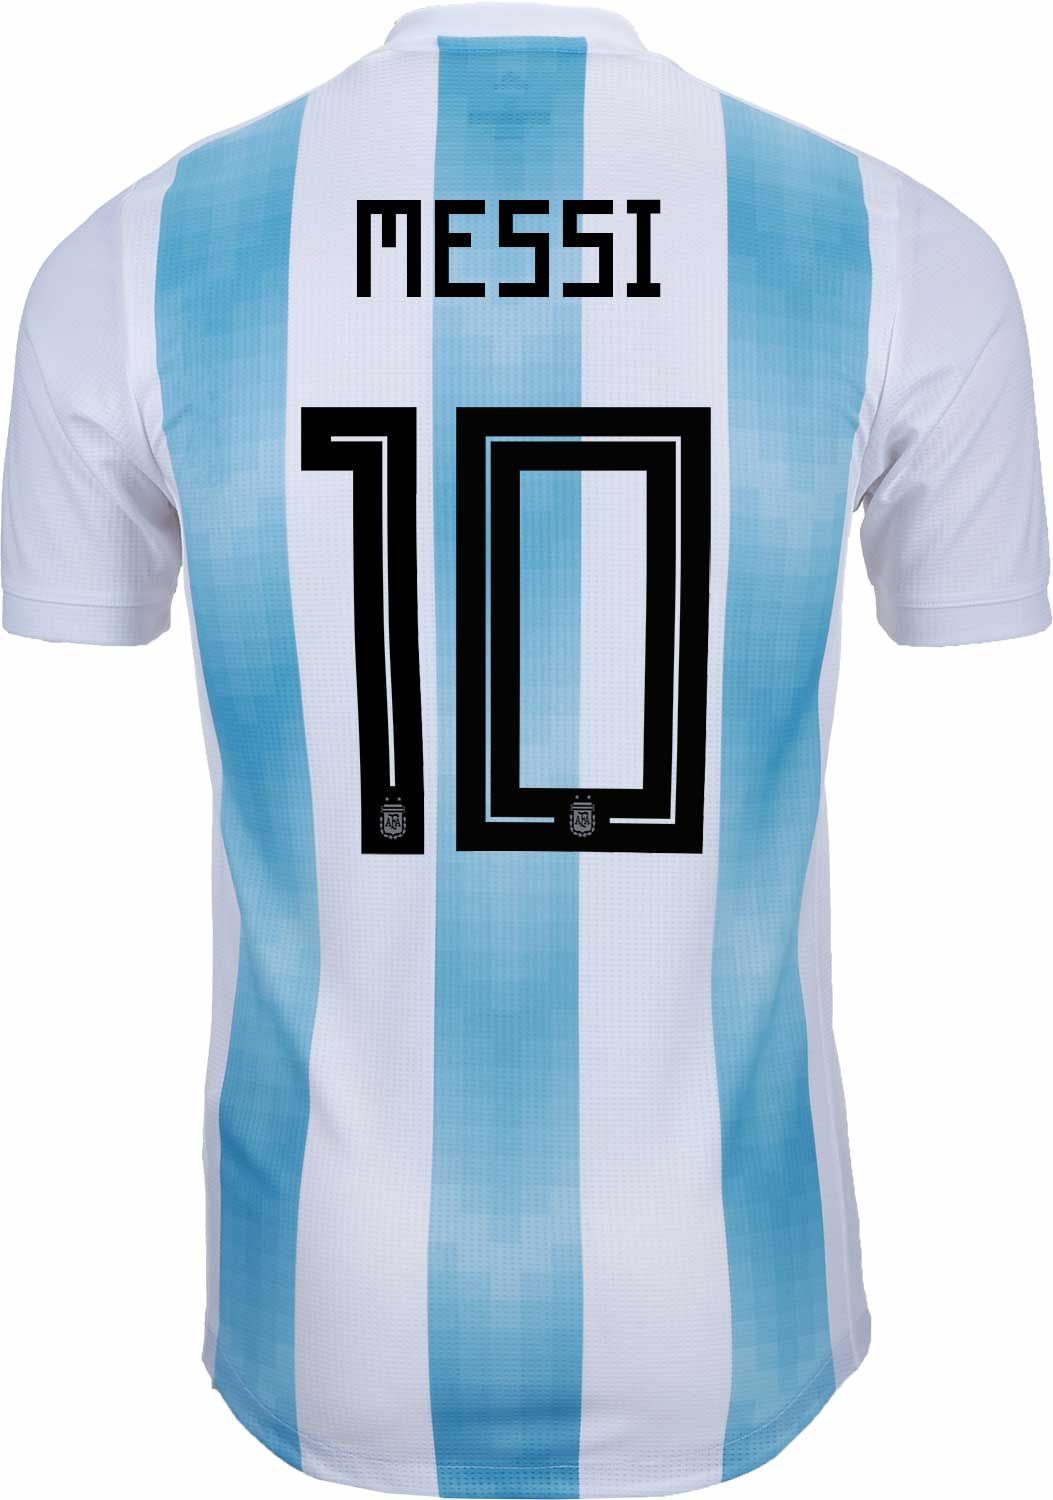 f5ccd518d5f 2018 19 adidas Argentina Authentic Lionel Messi Home Jersey. Shop for yours  at soccerpro.com